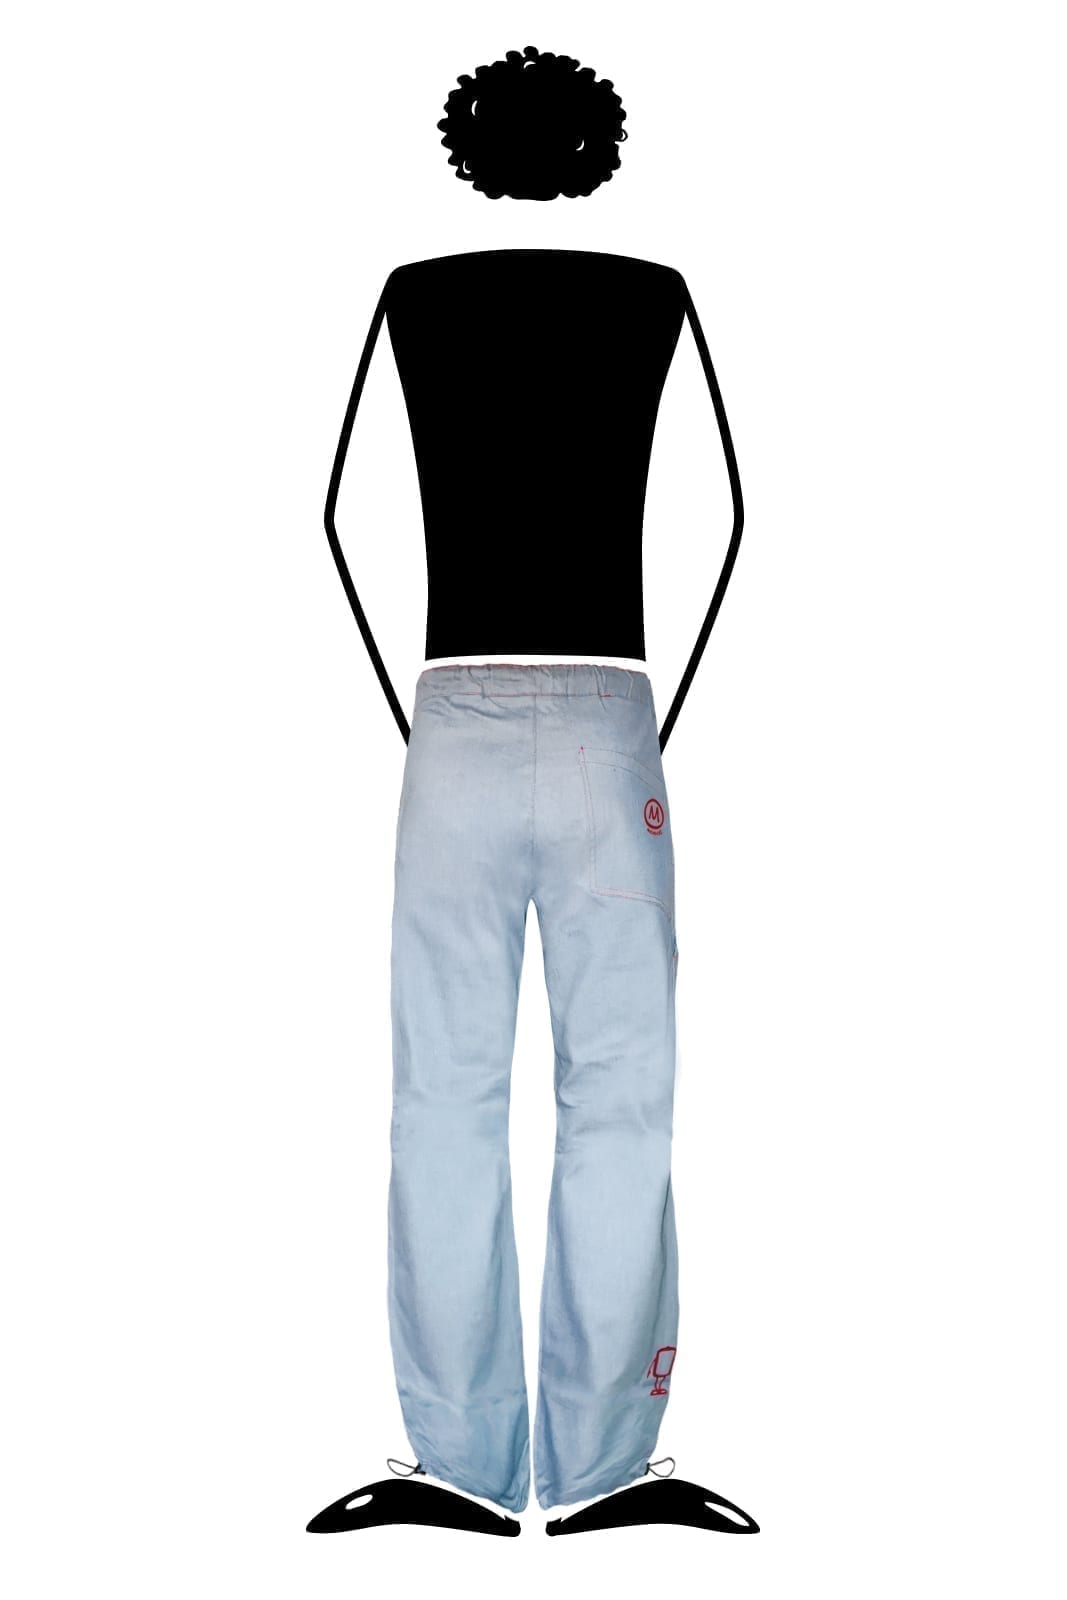 Jeans homme coutures rouge GERONIMO Monvic denim pour escalade